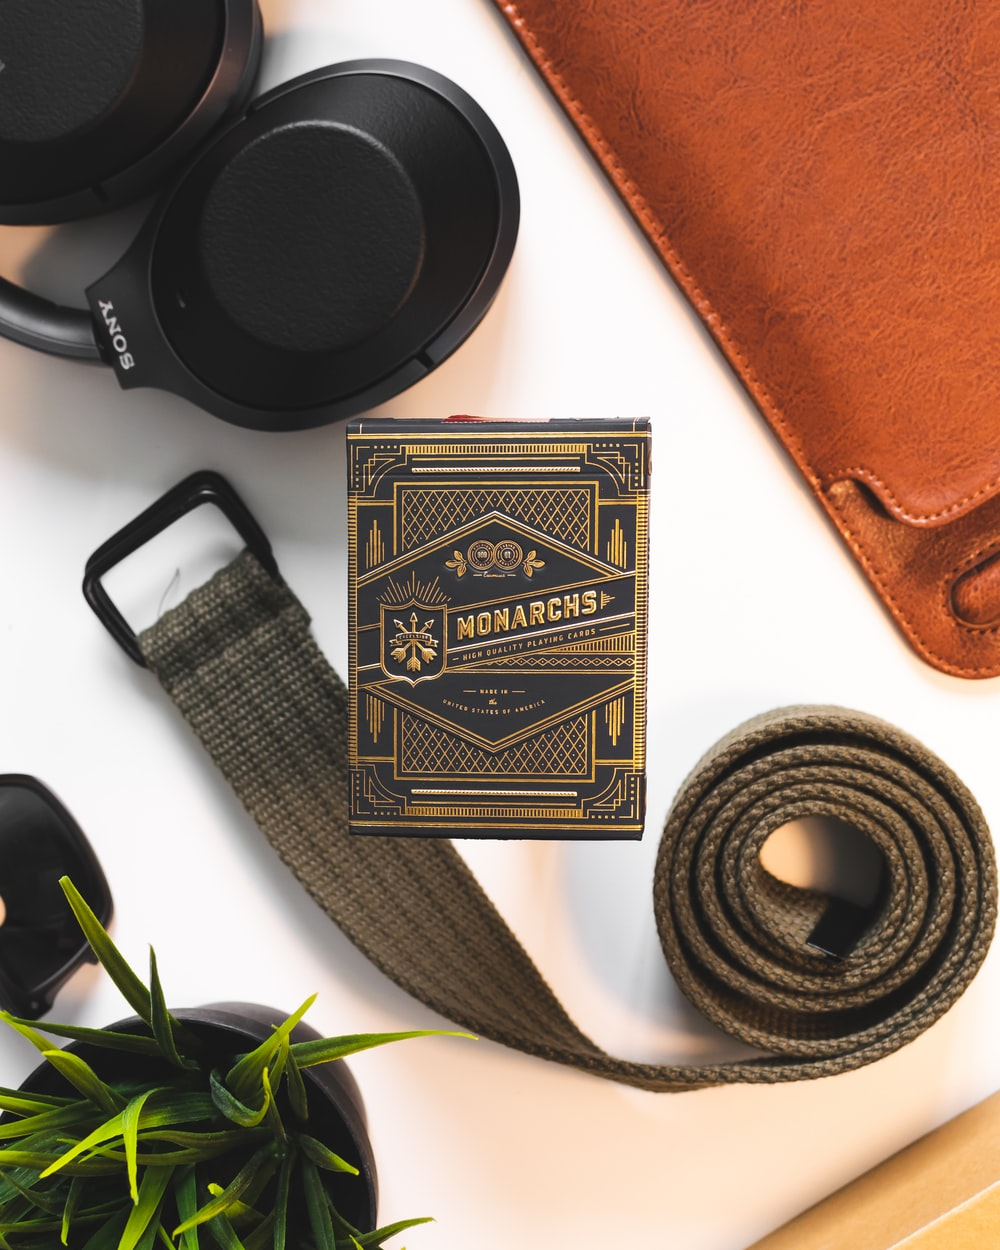 brown belt with buckle